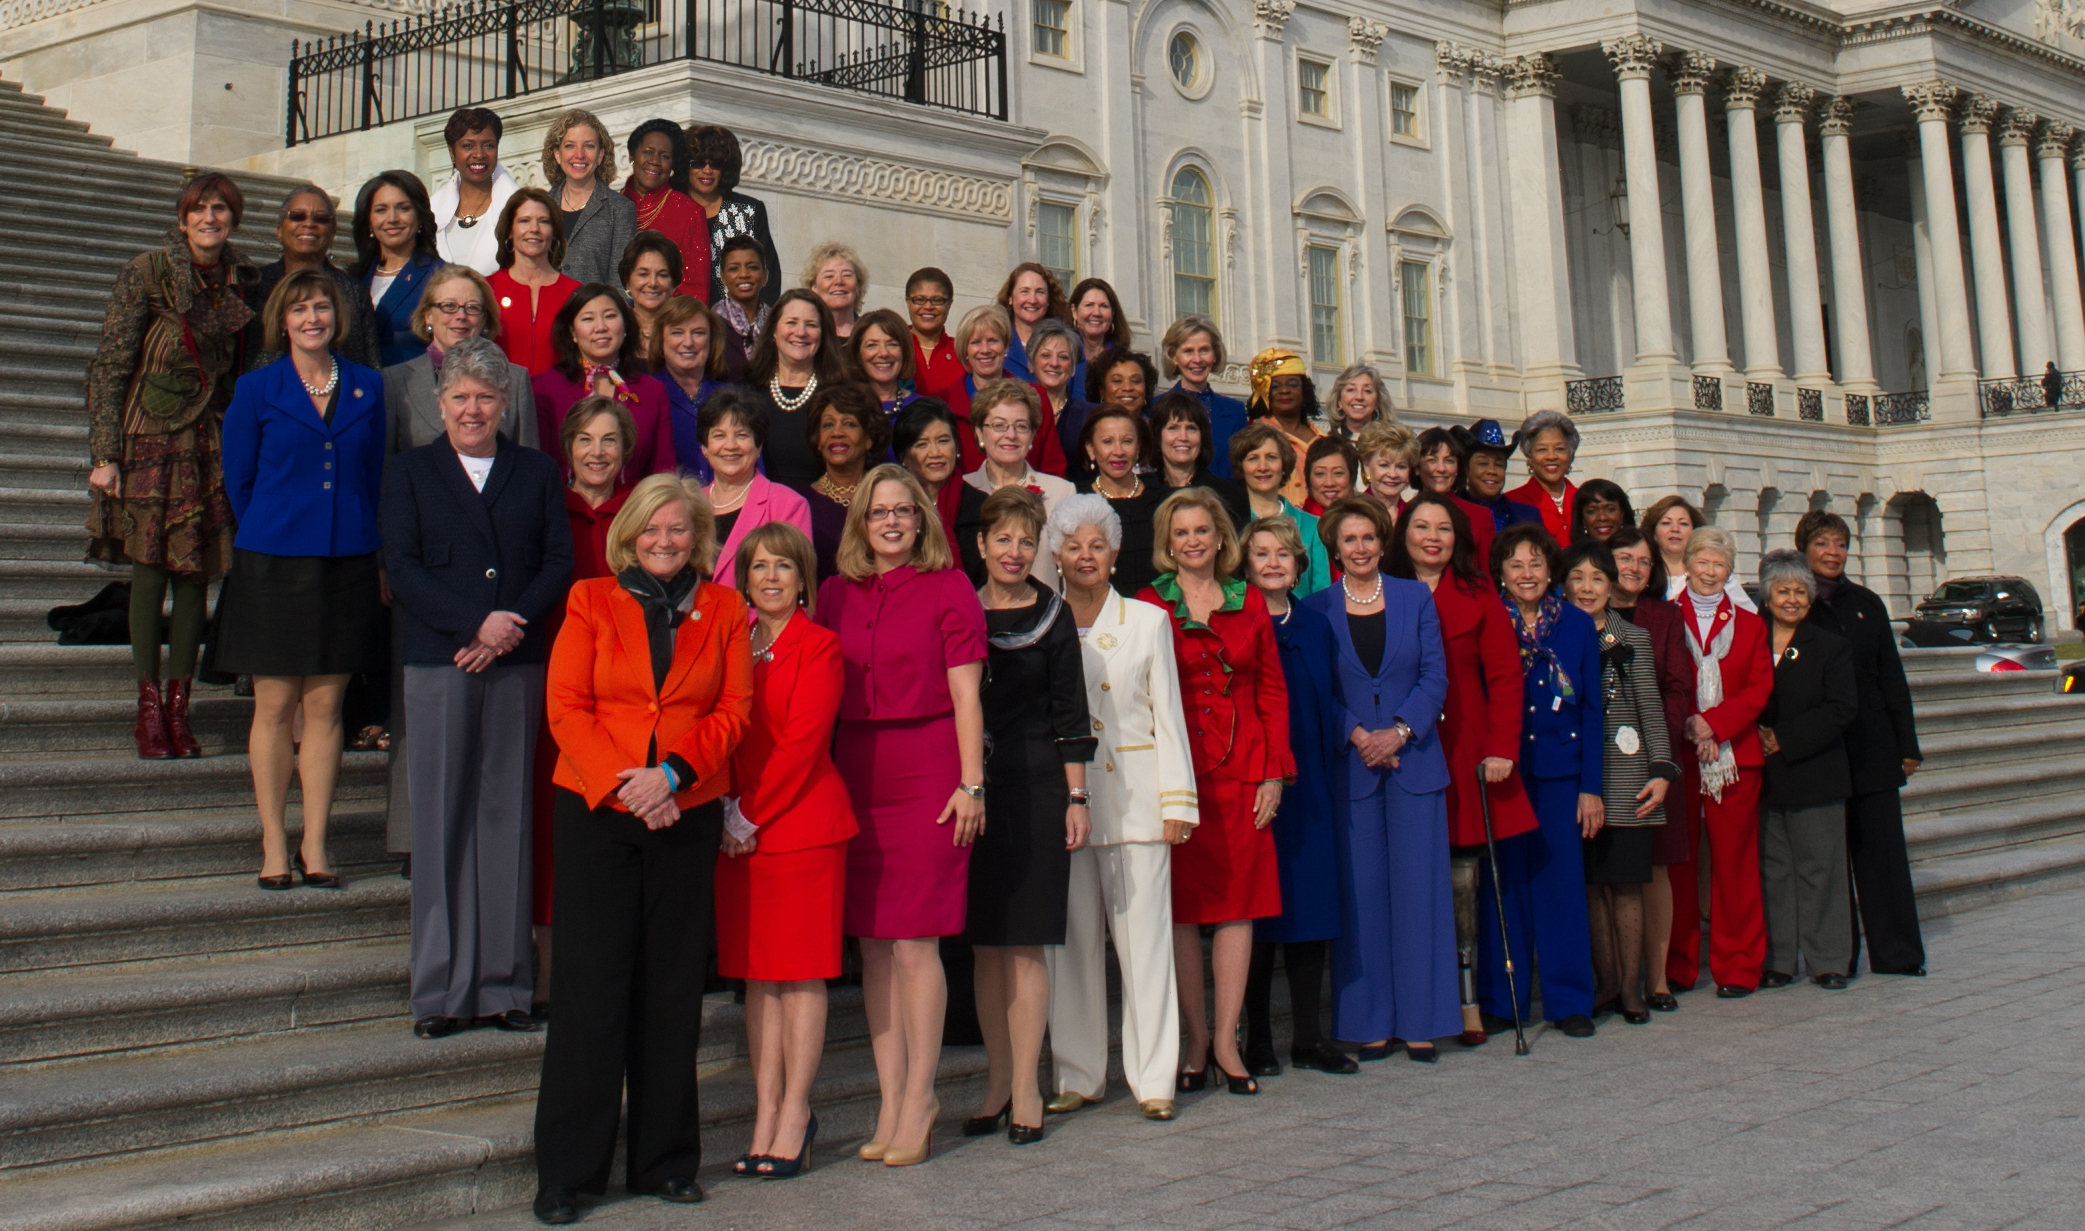 THE WINNING WOMEN OF THE NOVEMBER 6, 2018 ELECTIONS